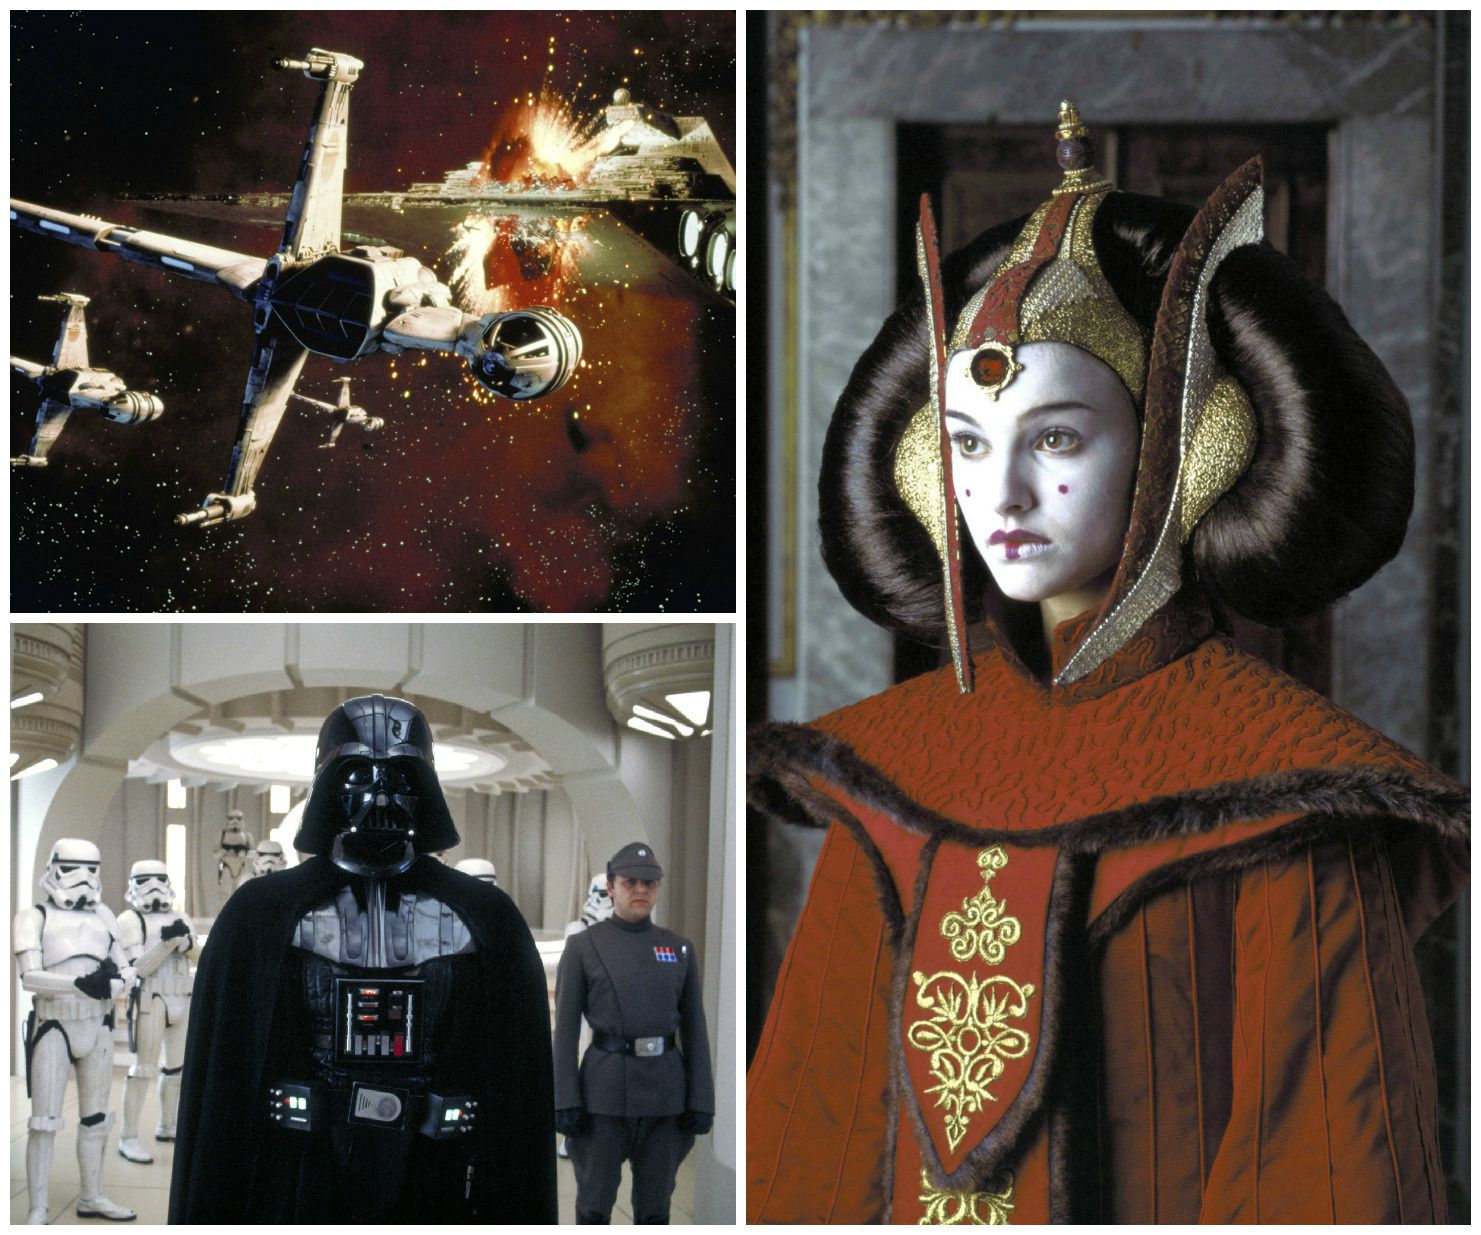 © 1980 Lucasfilm Ltd. All rights reserved - © 1983 Lucasfilm Ltd. All rights reserved - © 1999 Lucasfilm Ltd. All rights reserved.